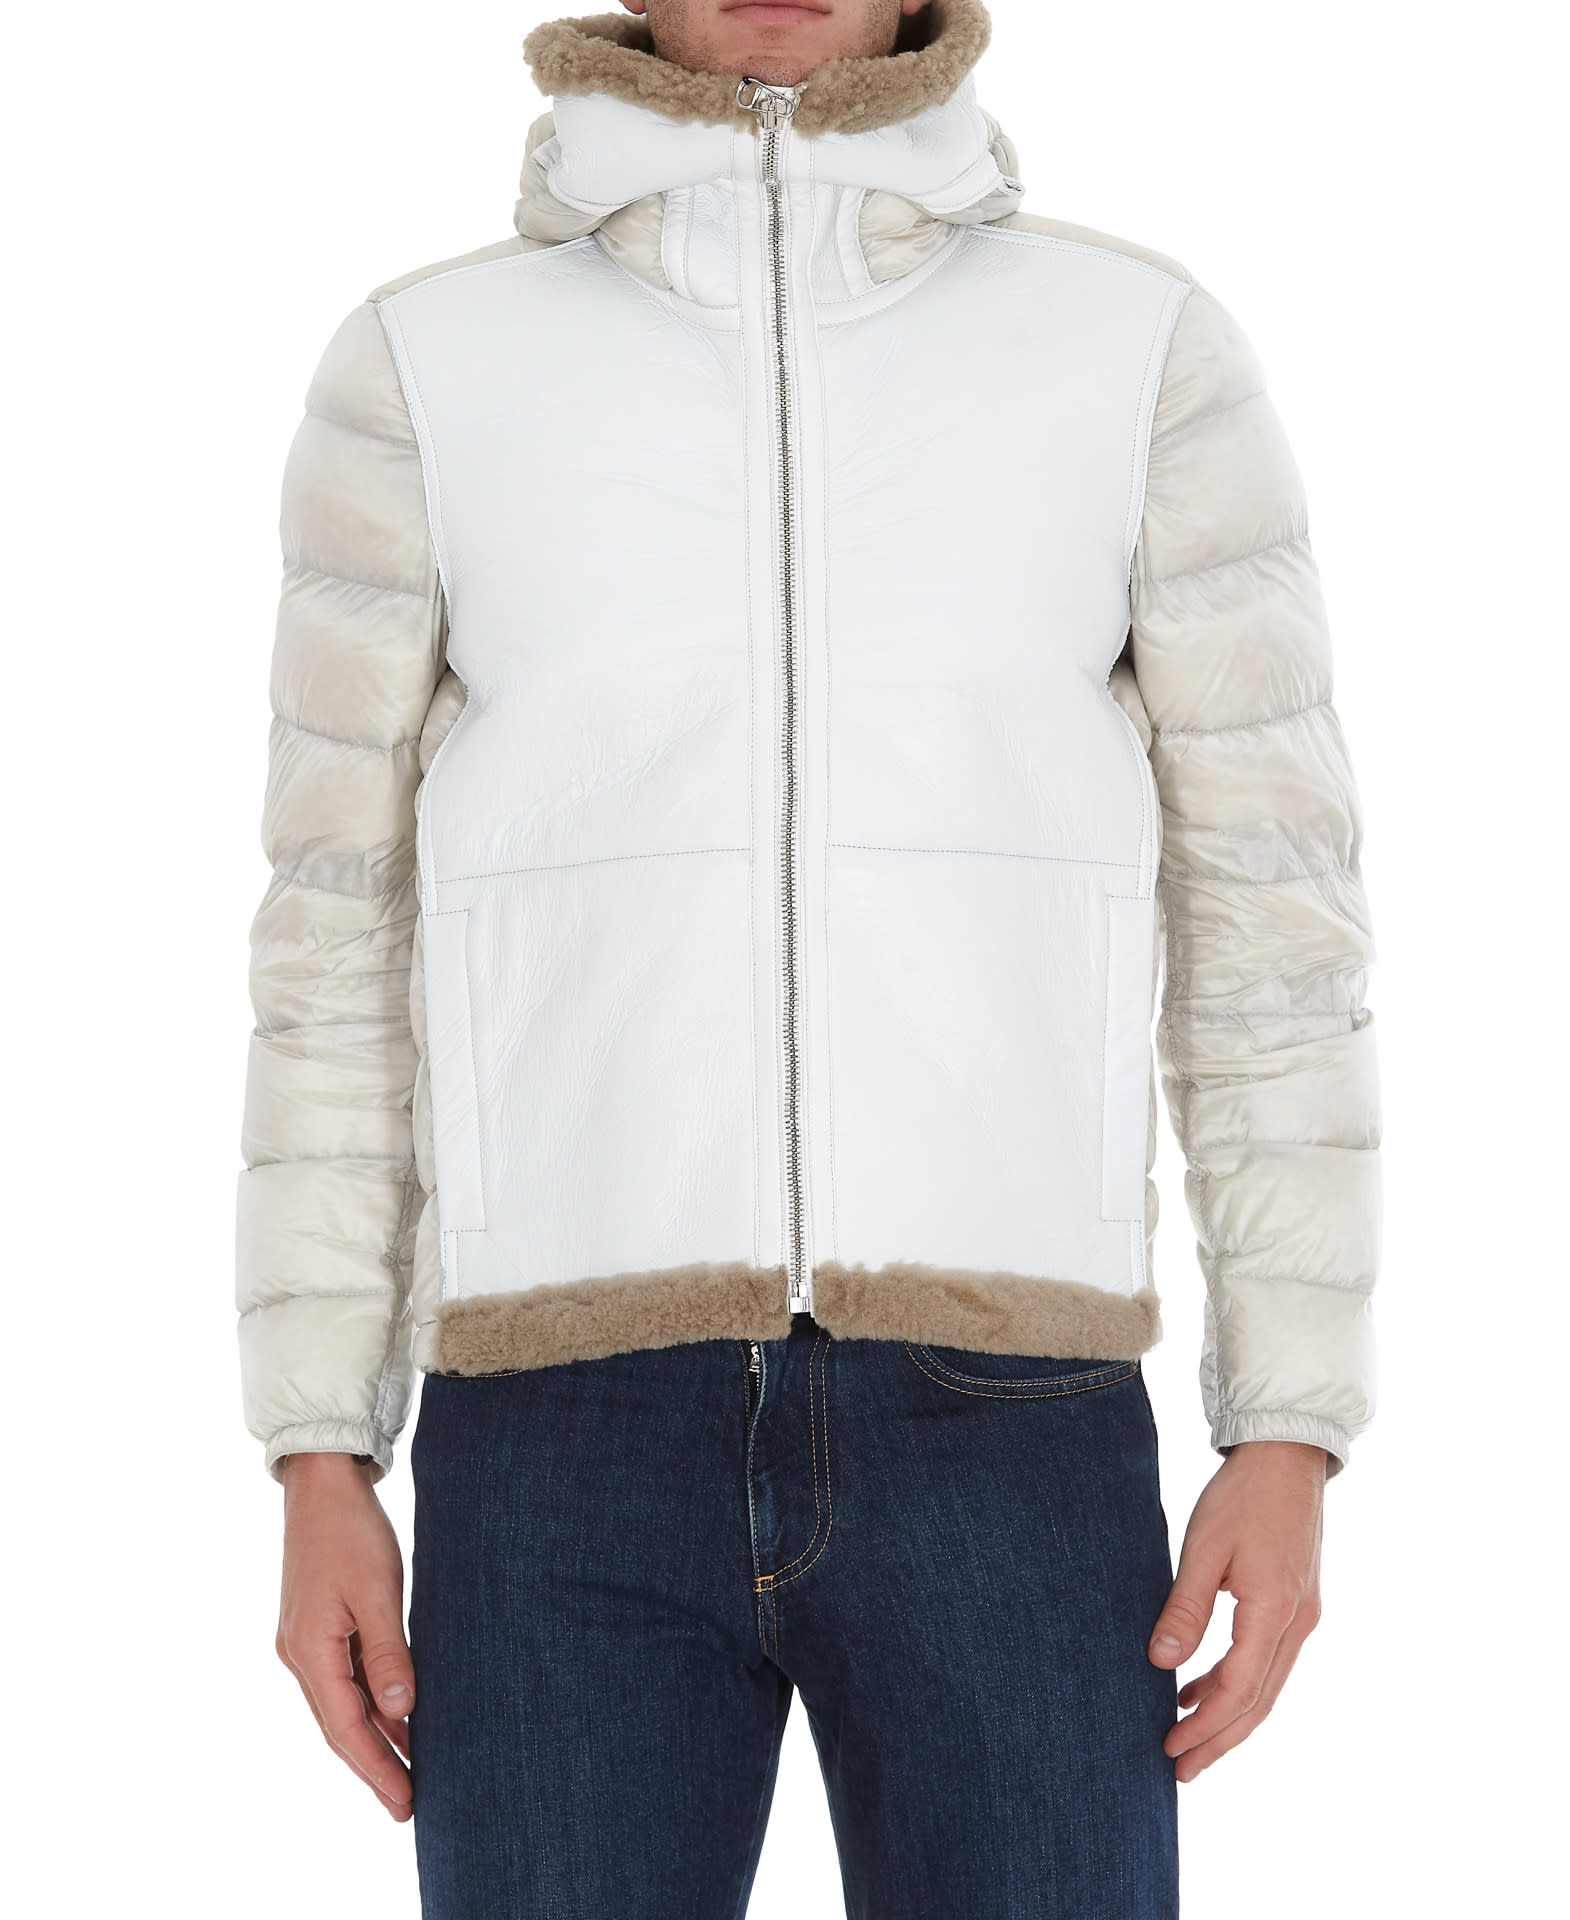 man down jacket, padded, shearling detailsComposition: 100% Real Shearling